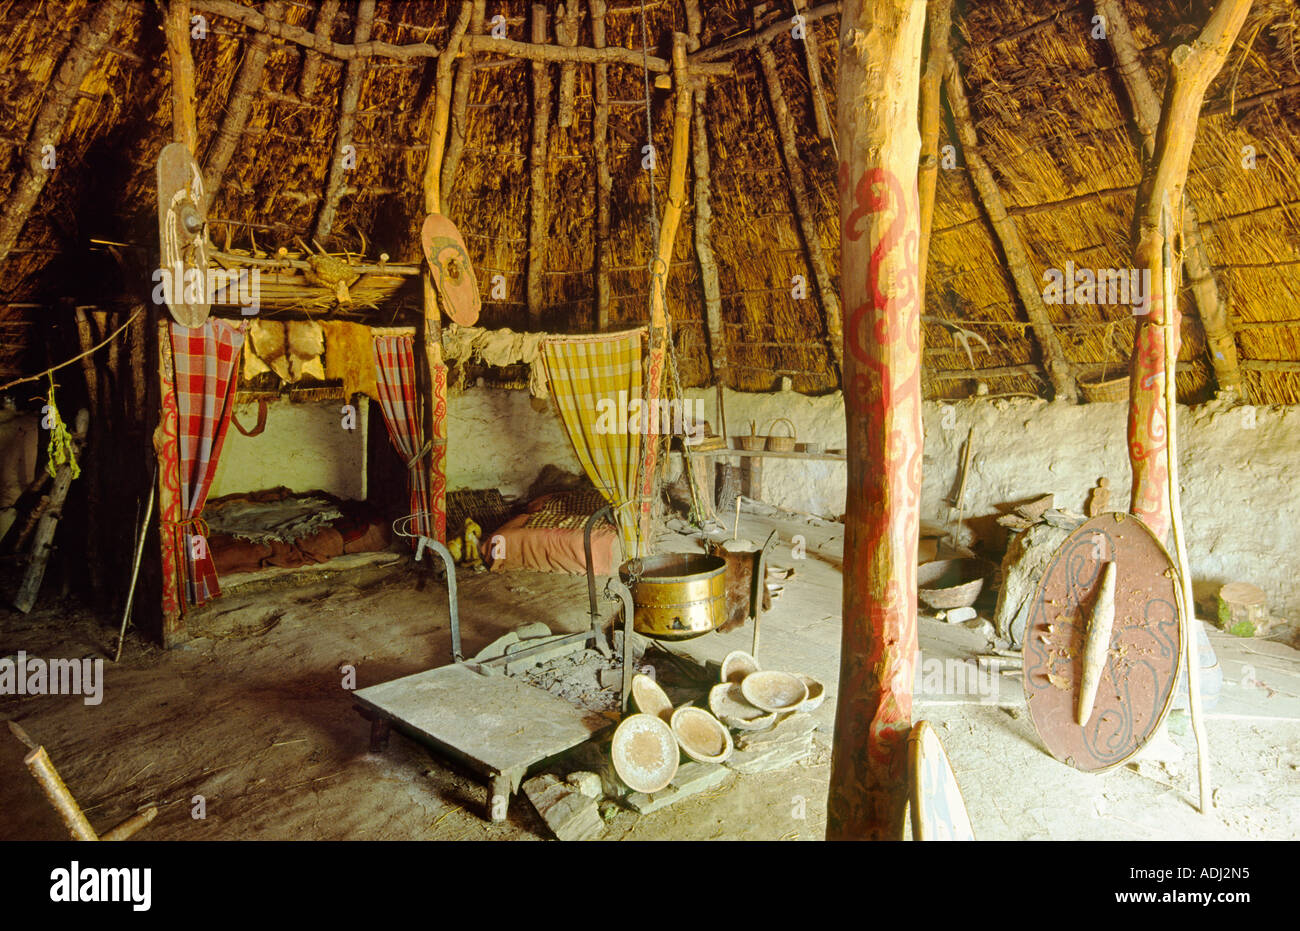 Celtic Iron Age Roundhouse Reconstructed On Original